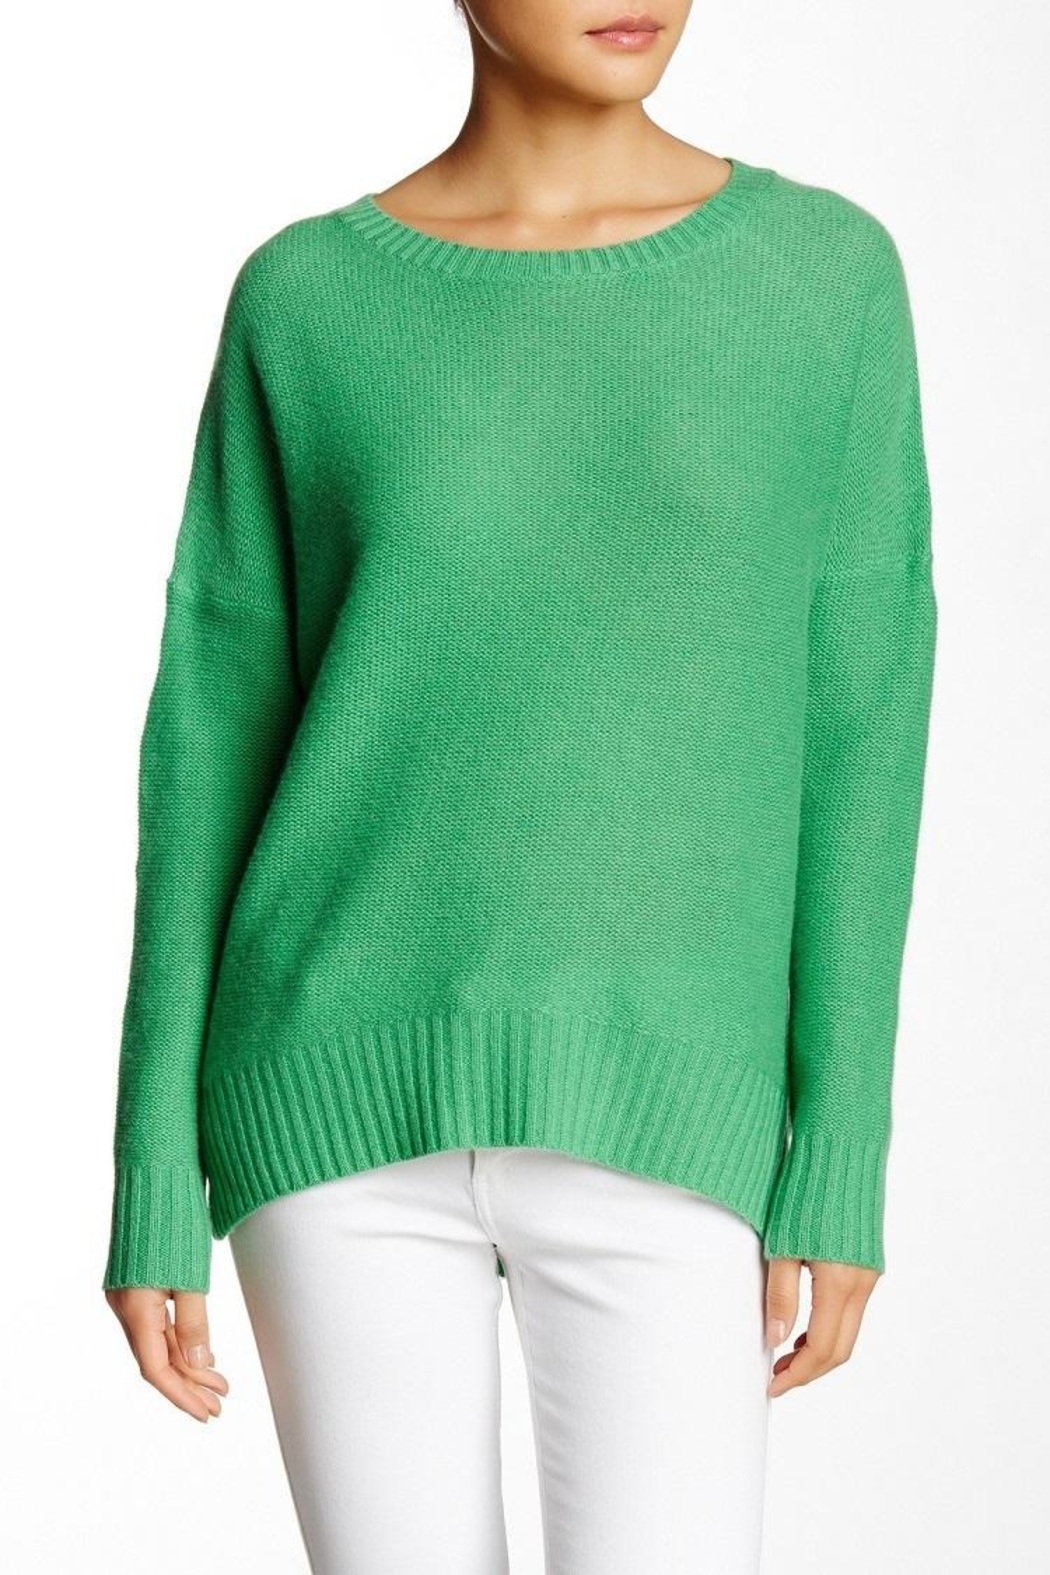 360 Cashmere Dewey Cashmere Sweater - Front Cropped Image